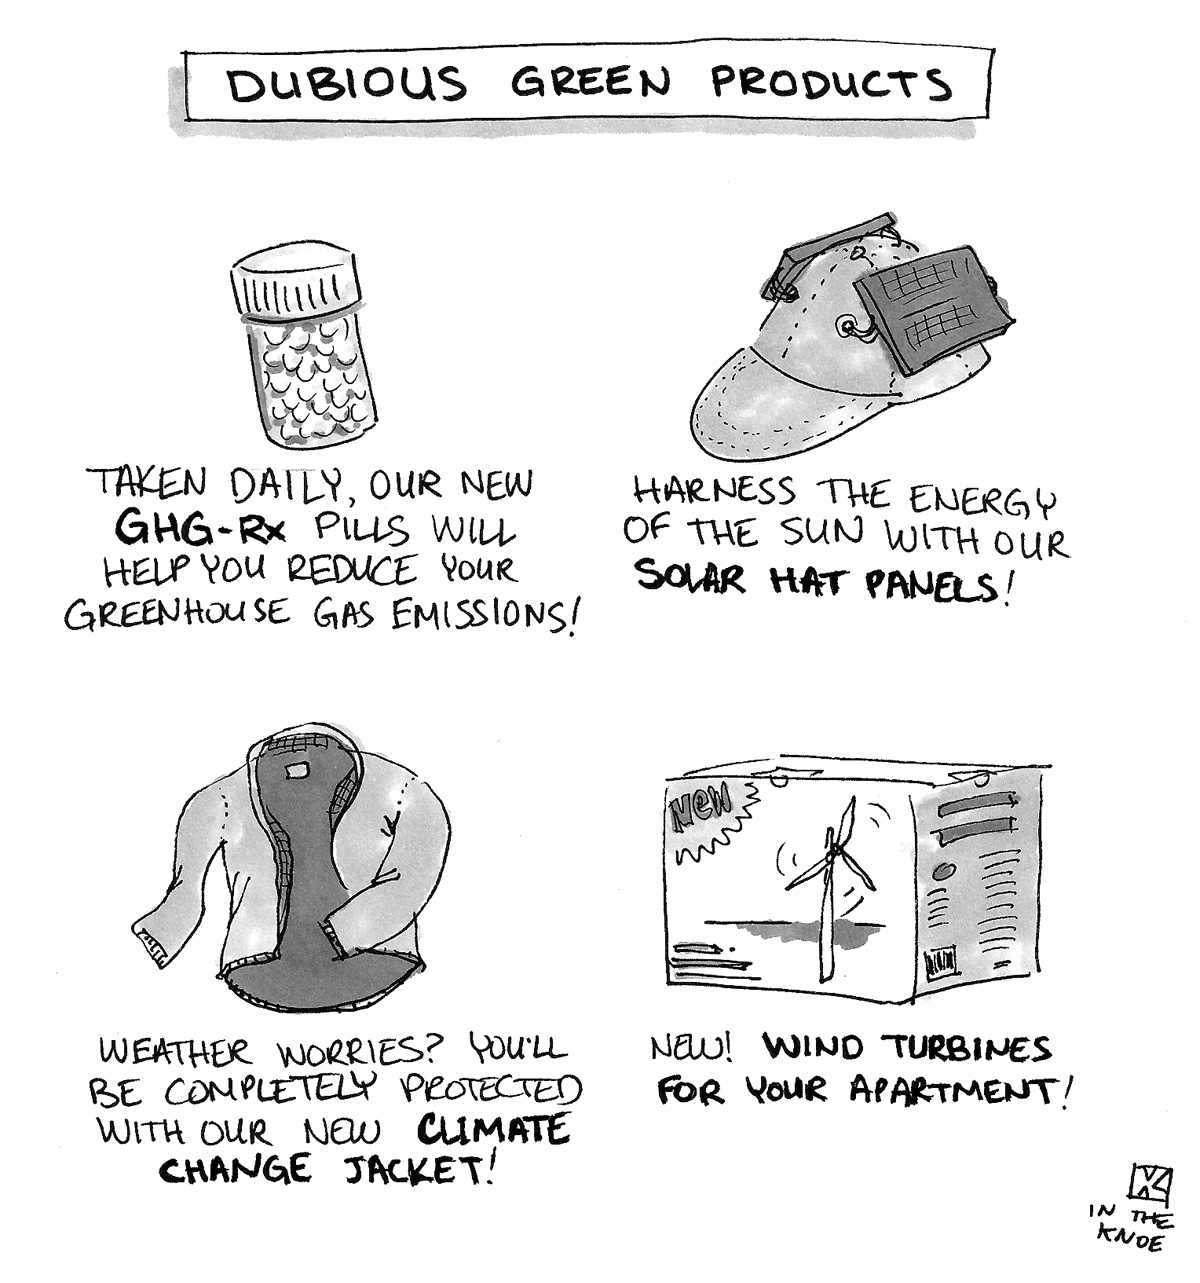 (Dubious Green Products)